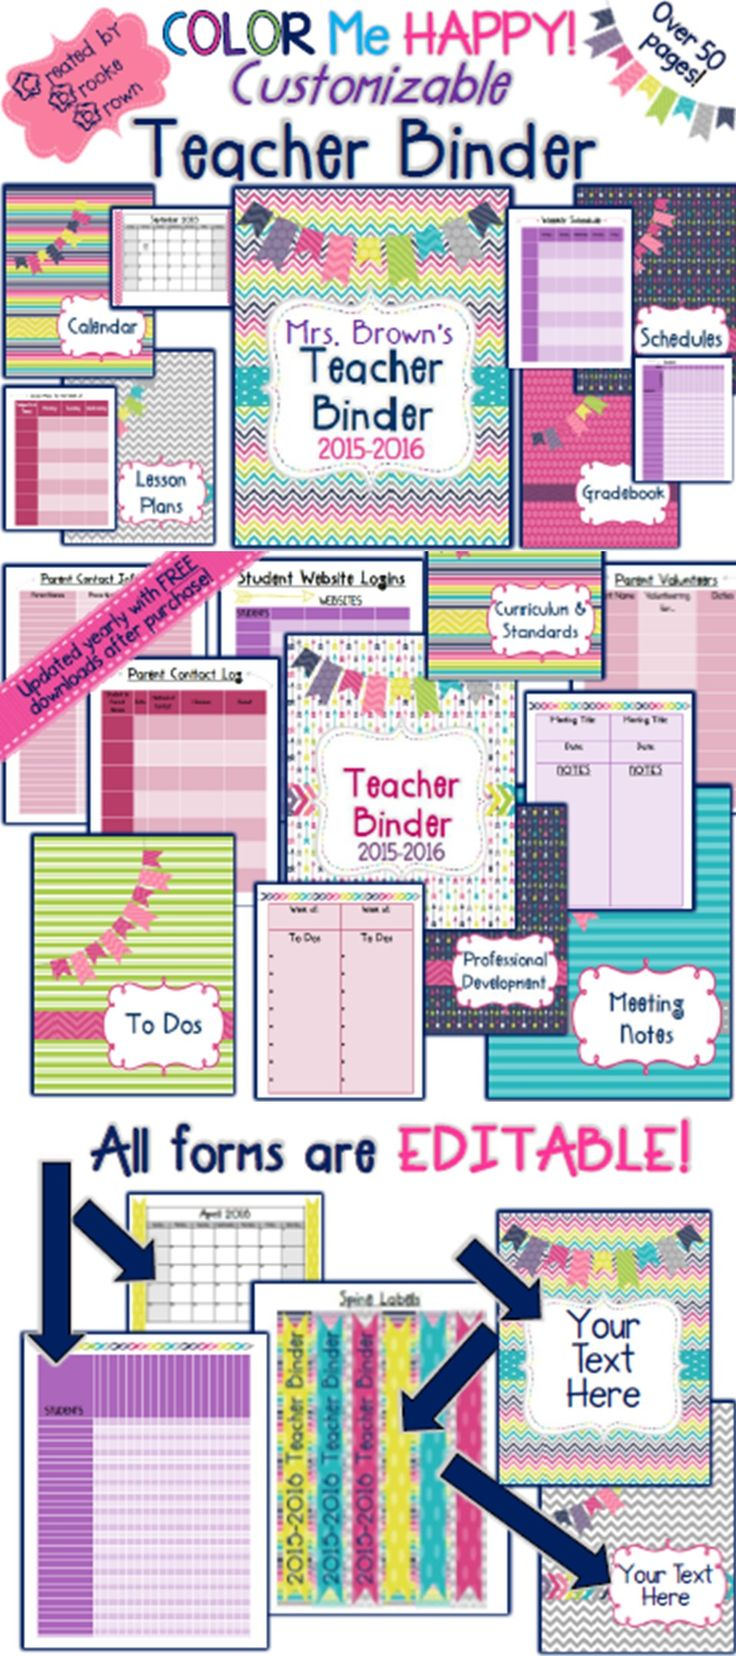 NEW Color Me Happy 2015-2016 CUSTOMIZABLE TEACHER BINDER!